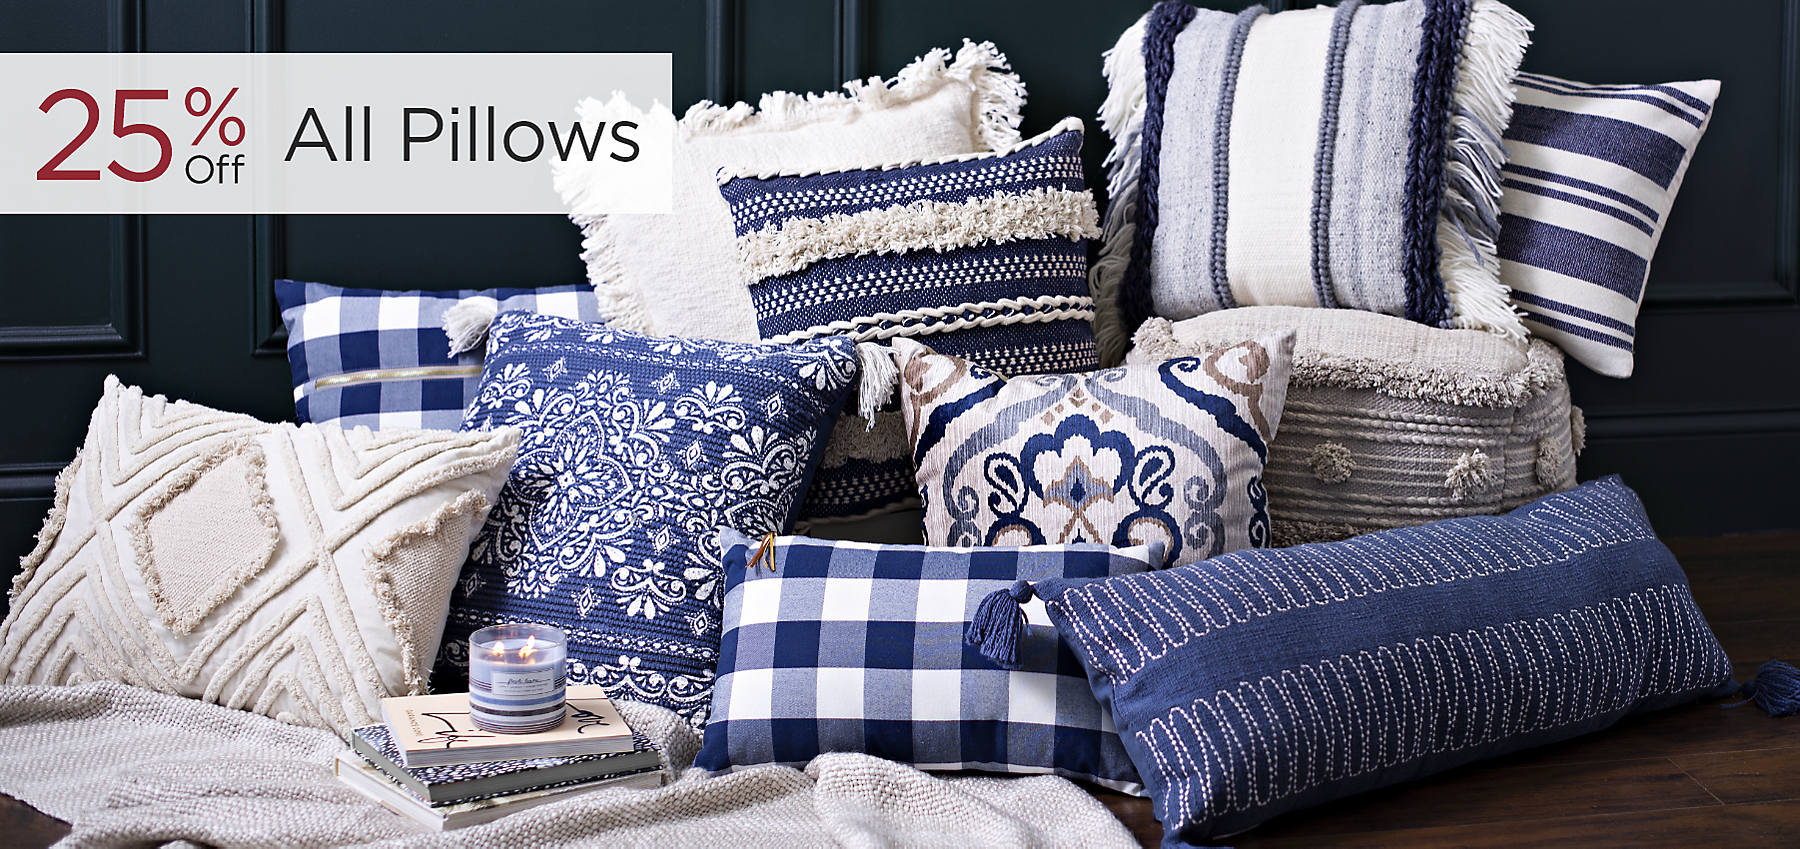 All Pillows 25% Off Shop Now